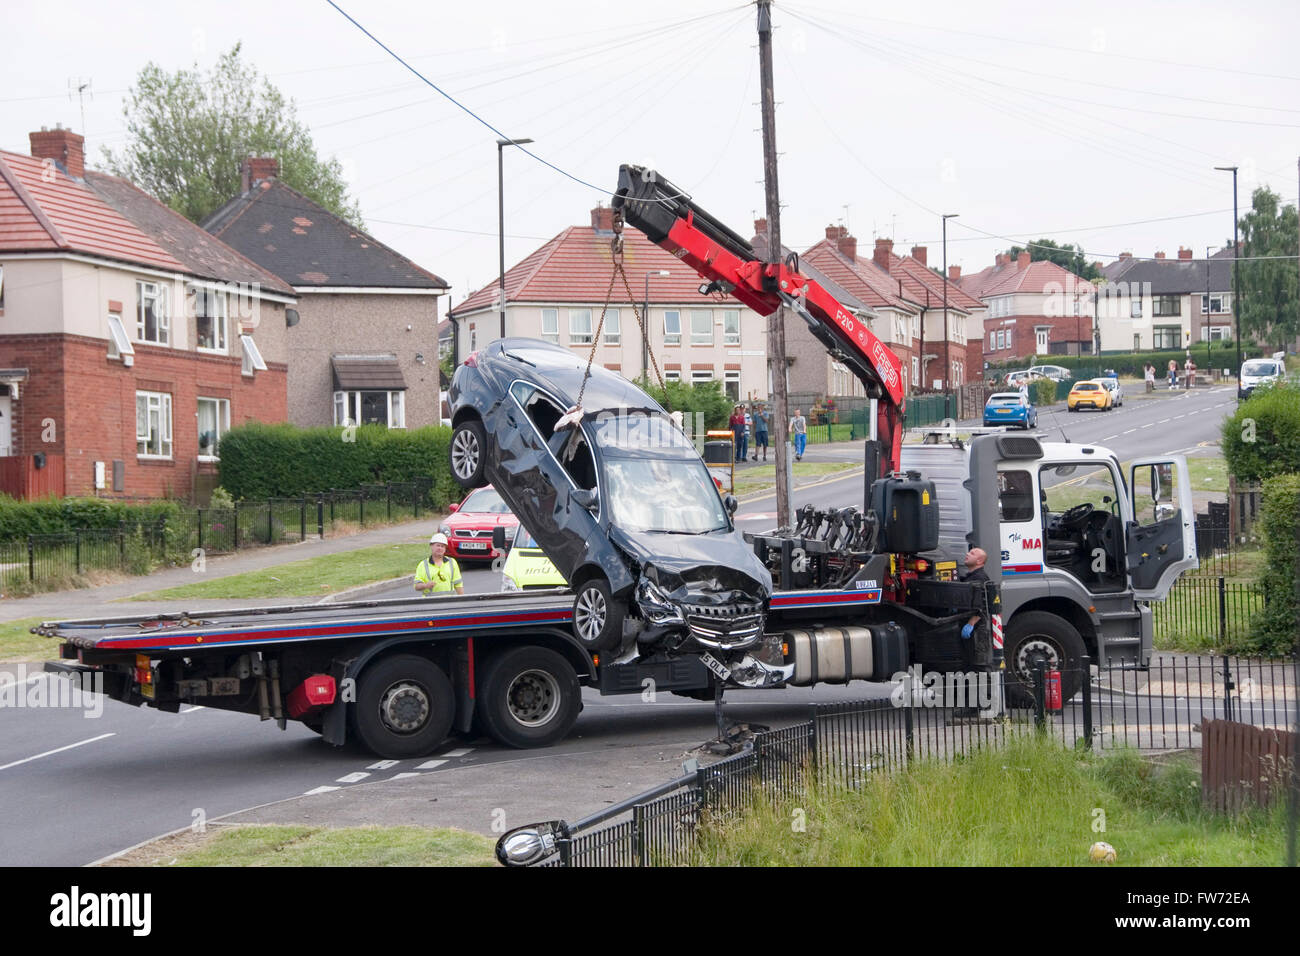 Recovery Truck Stockfotos & Recovery Truck Bilder - Alamy